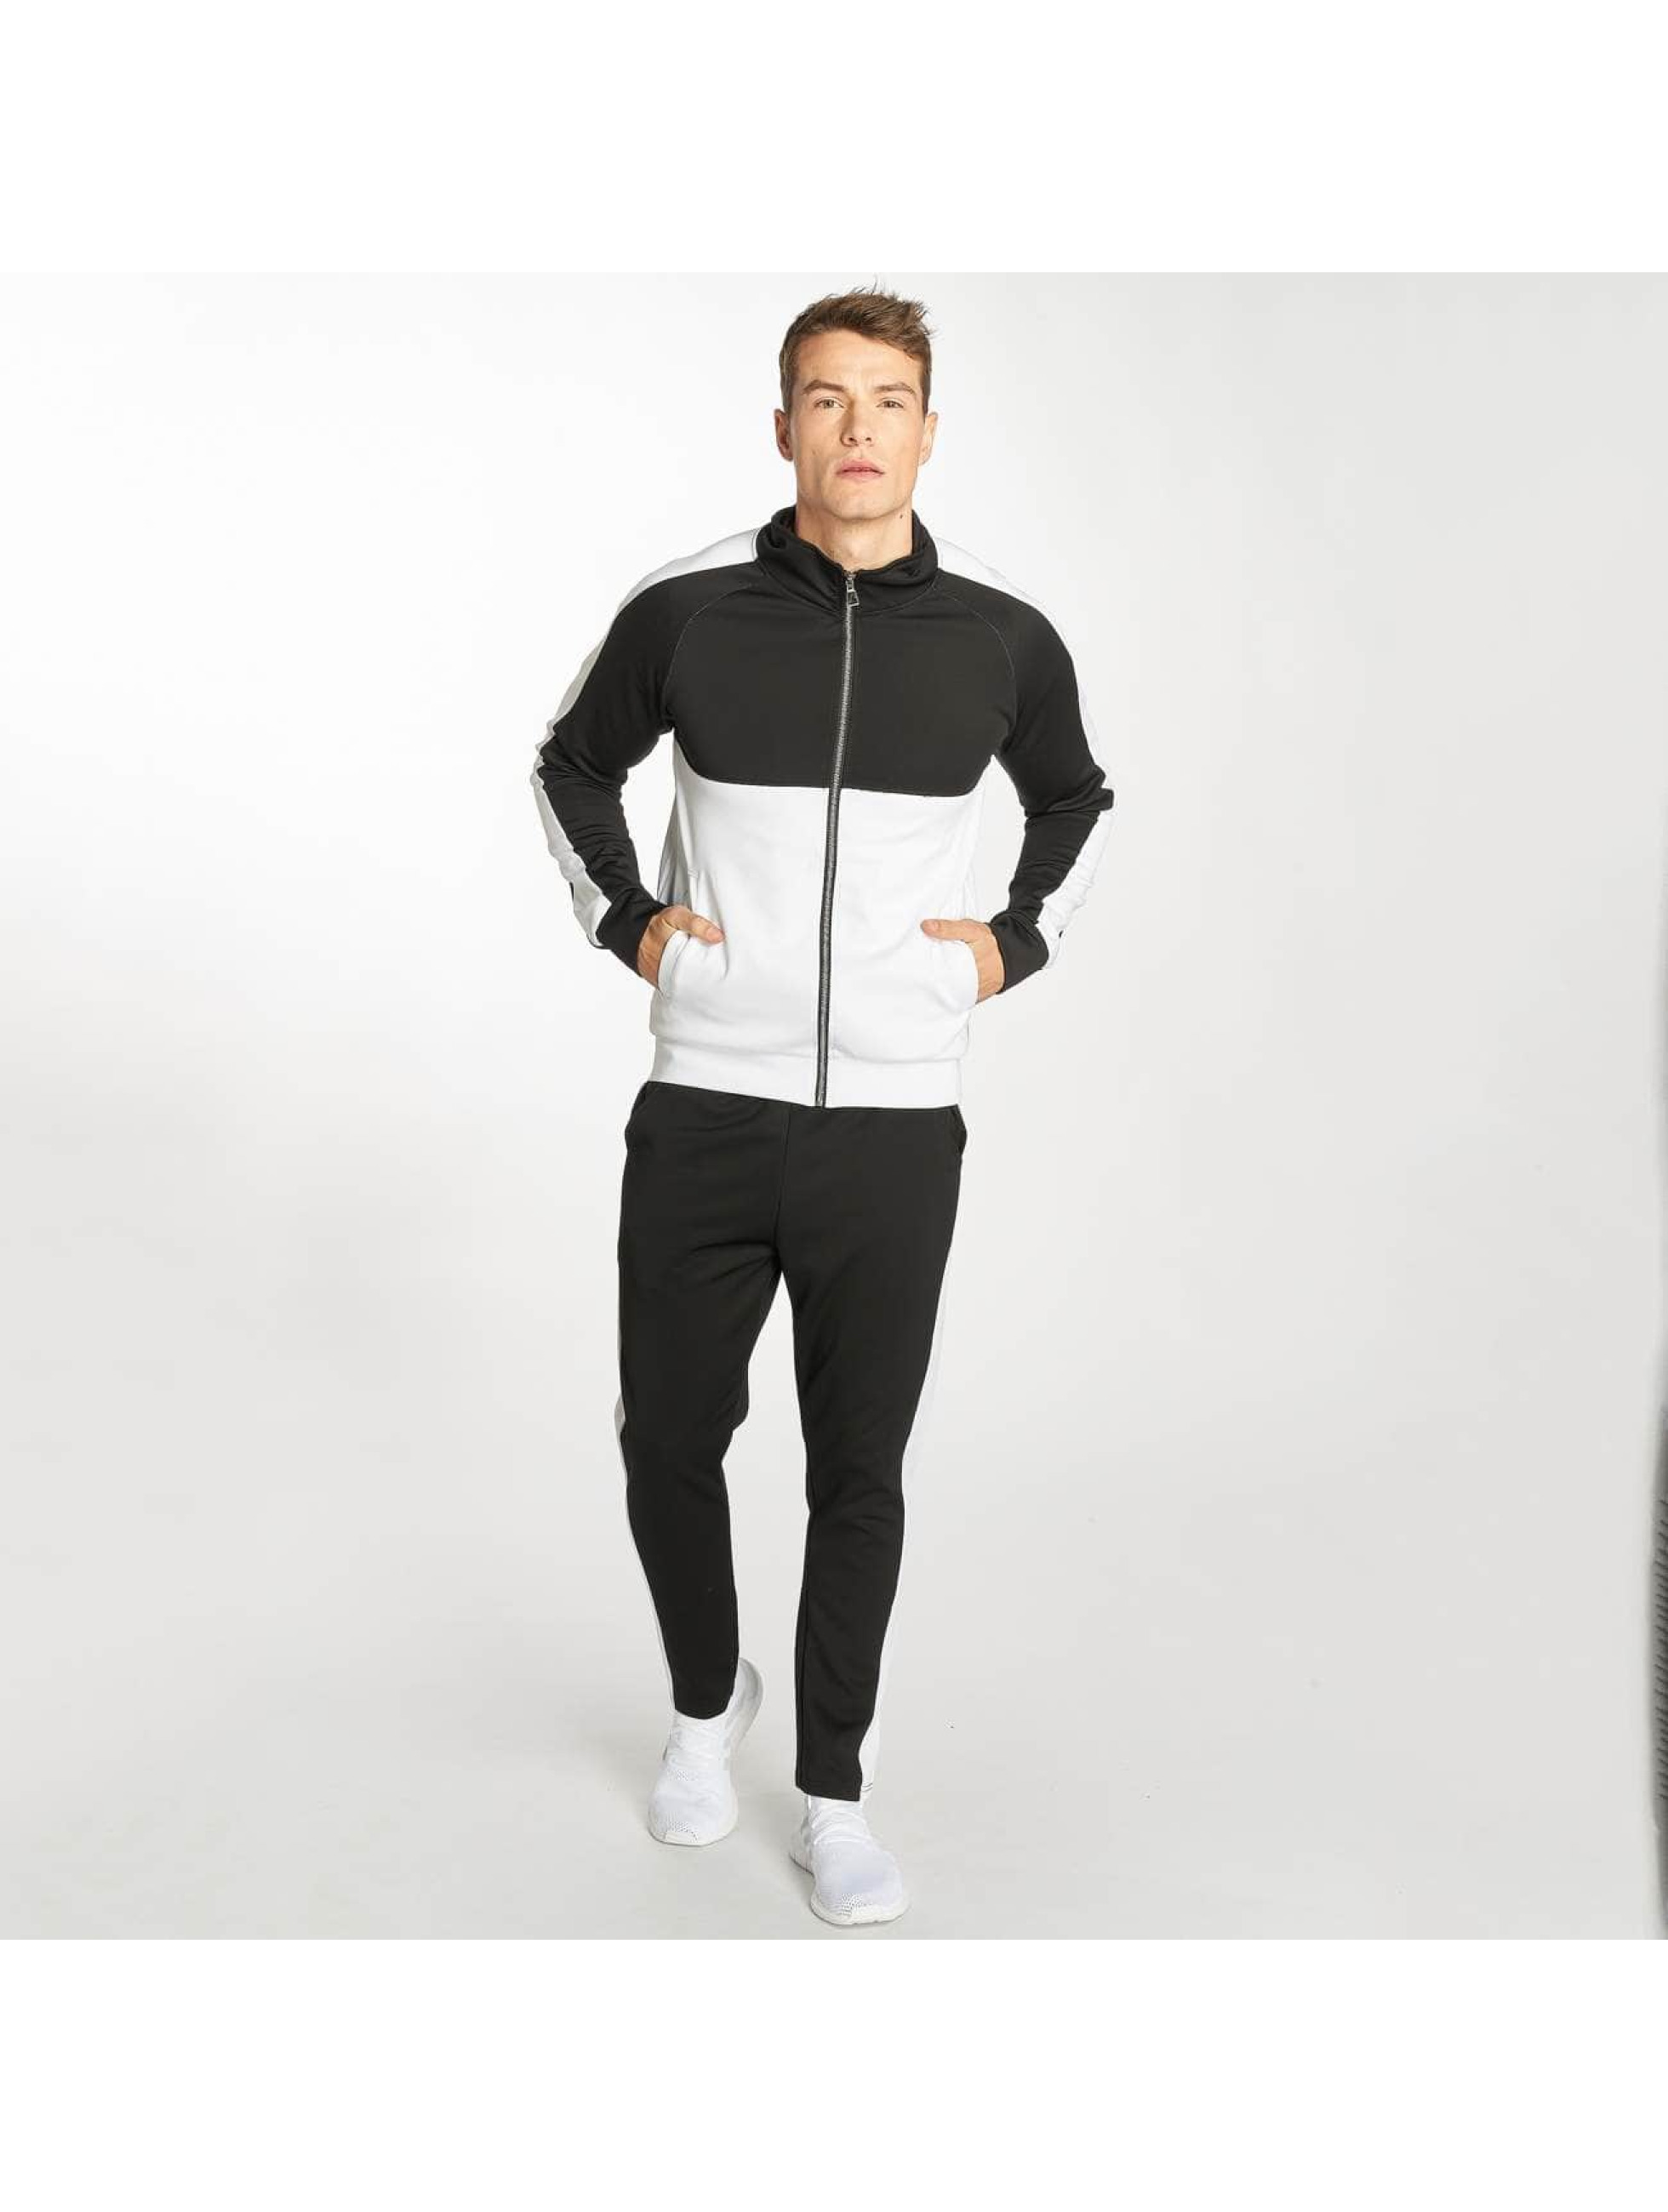 Zayne Paris Joggingsæt Two-Tone sort